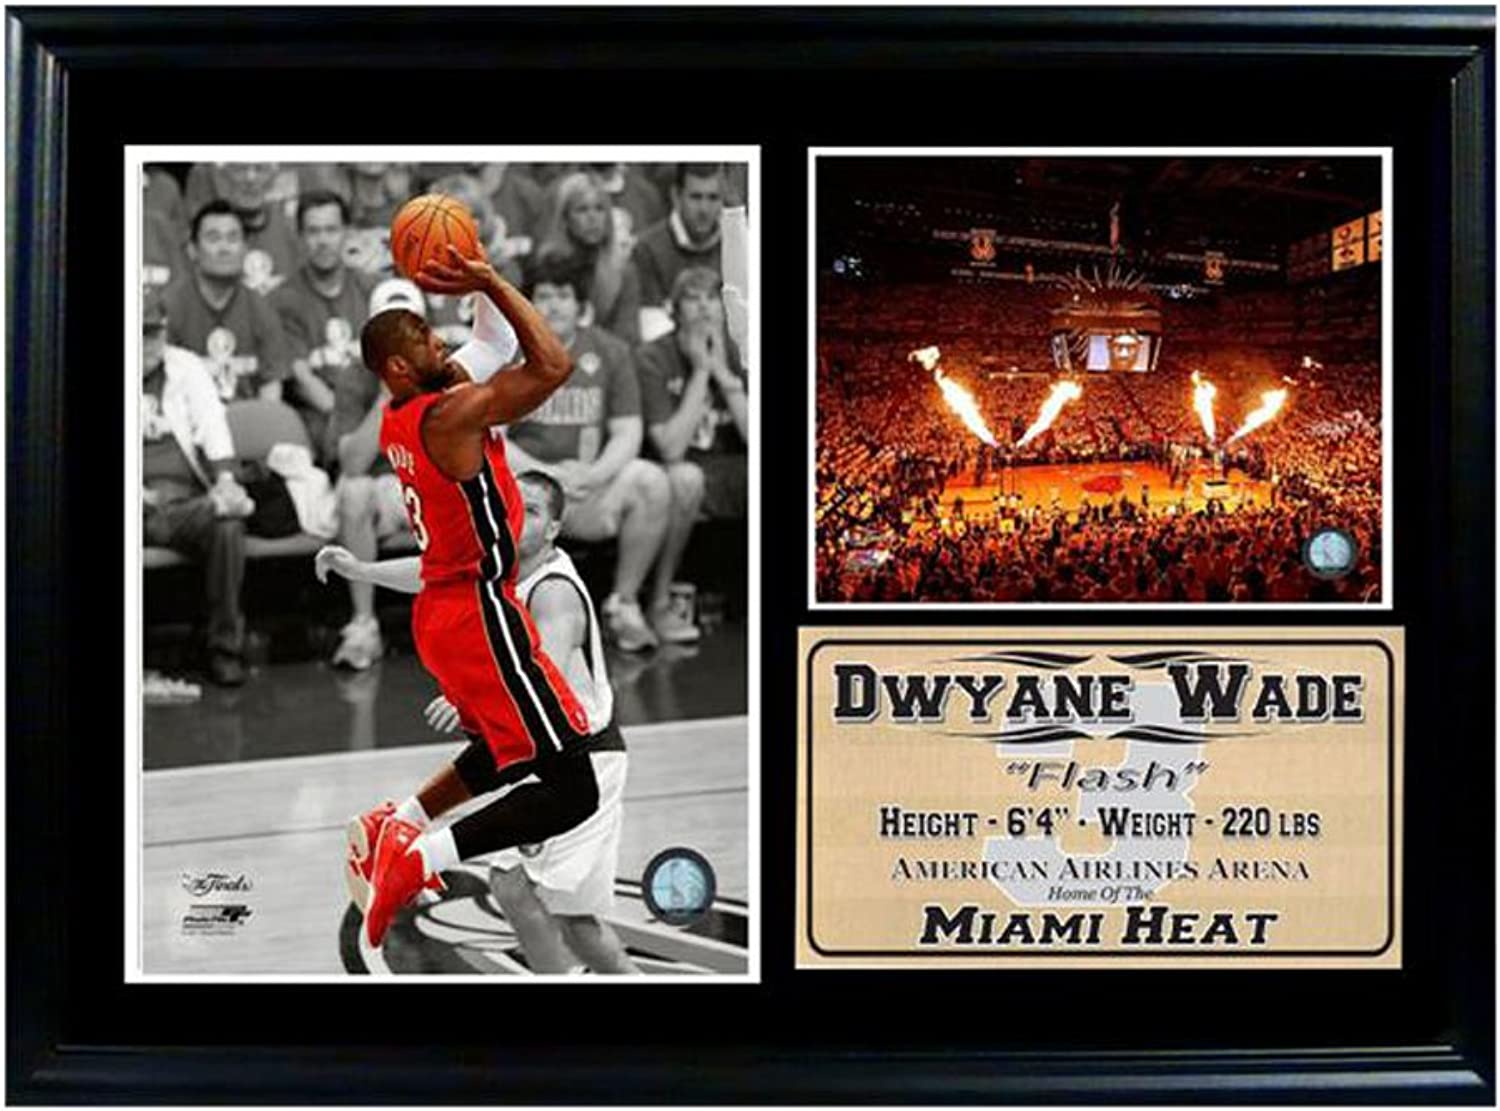 b25ad3c5 Encore Select NBA Miami Heat Framed Dwayne Wade Photo and Dolphin Stadium  Print, 12Inch by 18Inch 12710 nxkcux6042-Sporting goods